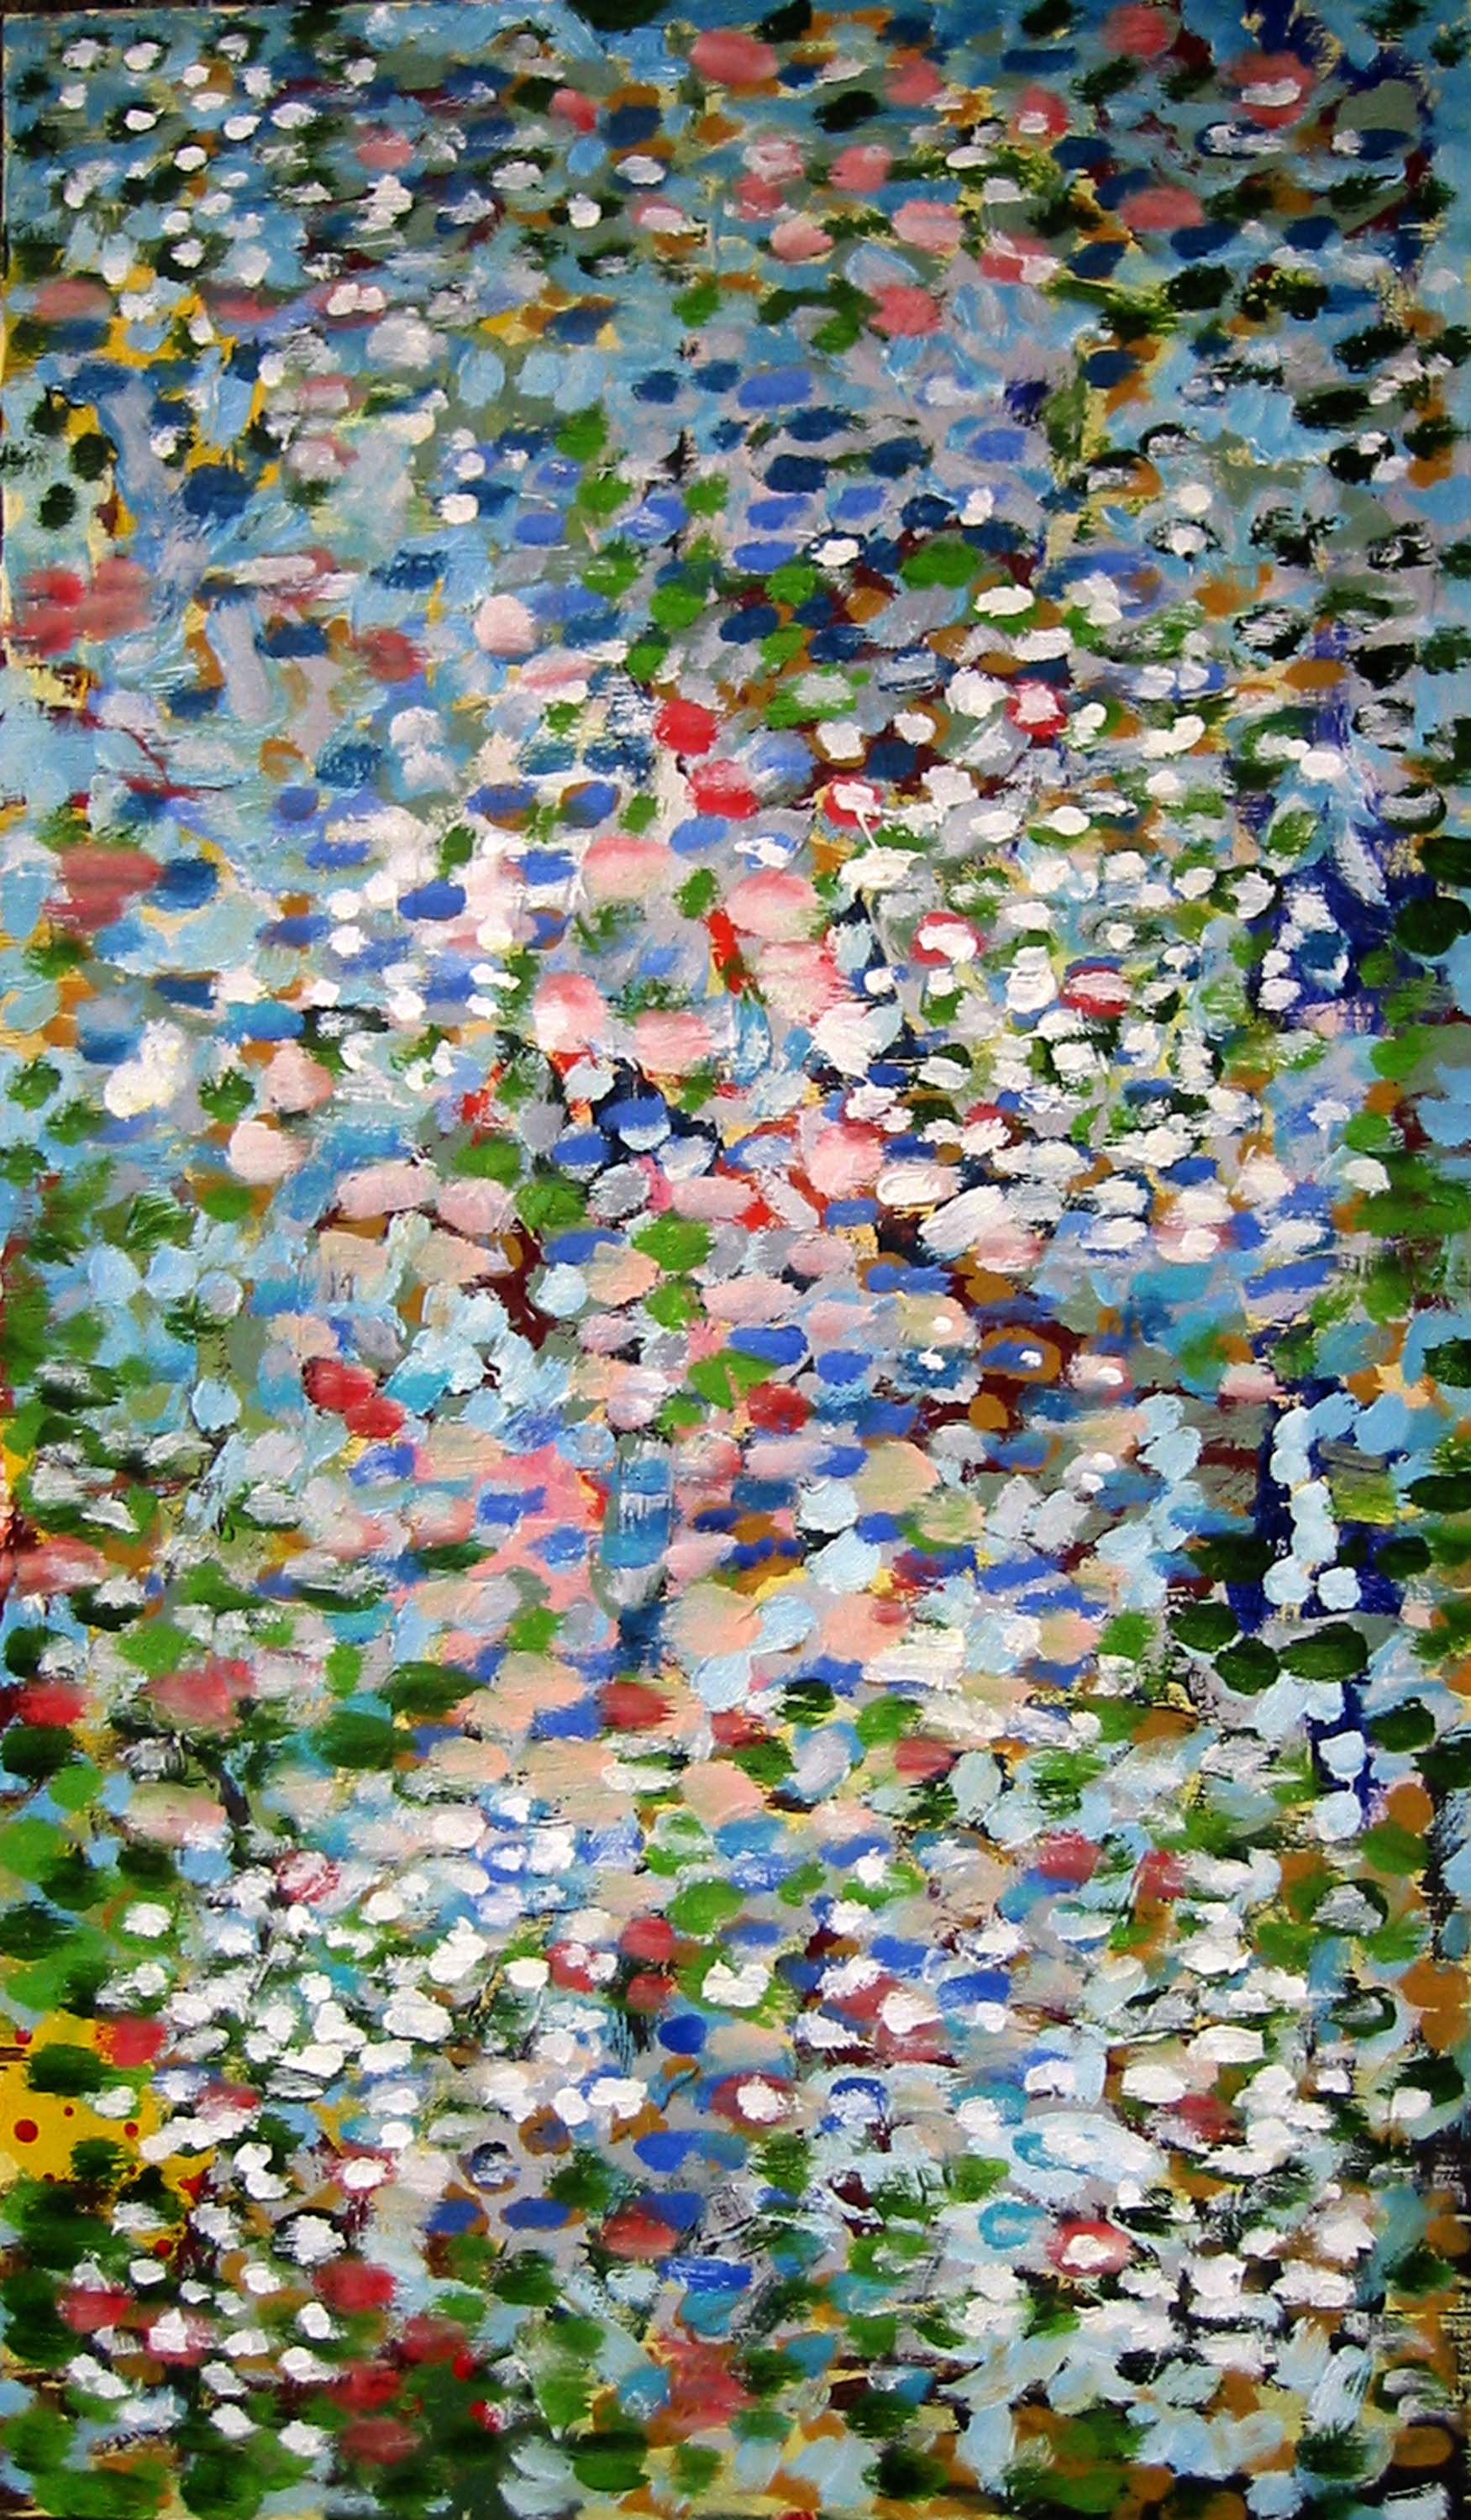 Reflections on my pond No 4 , circa 2005, huile sur toile / oil on canvas